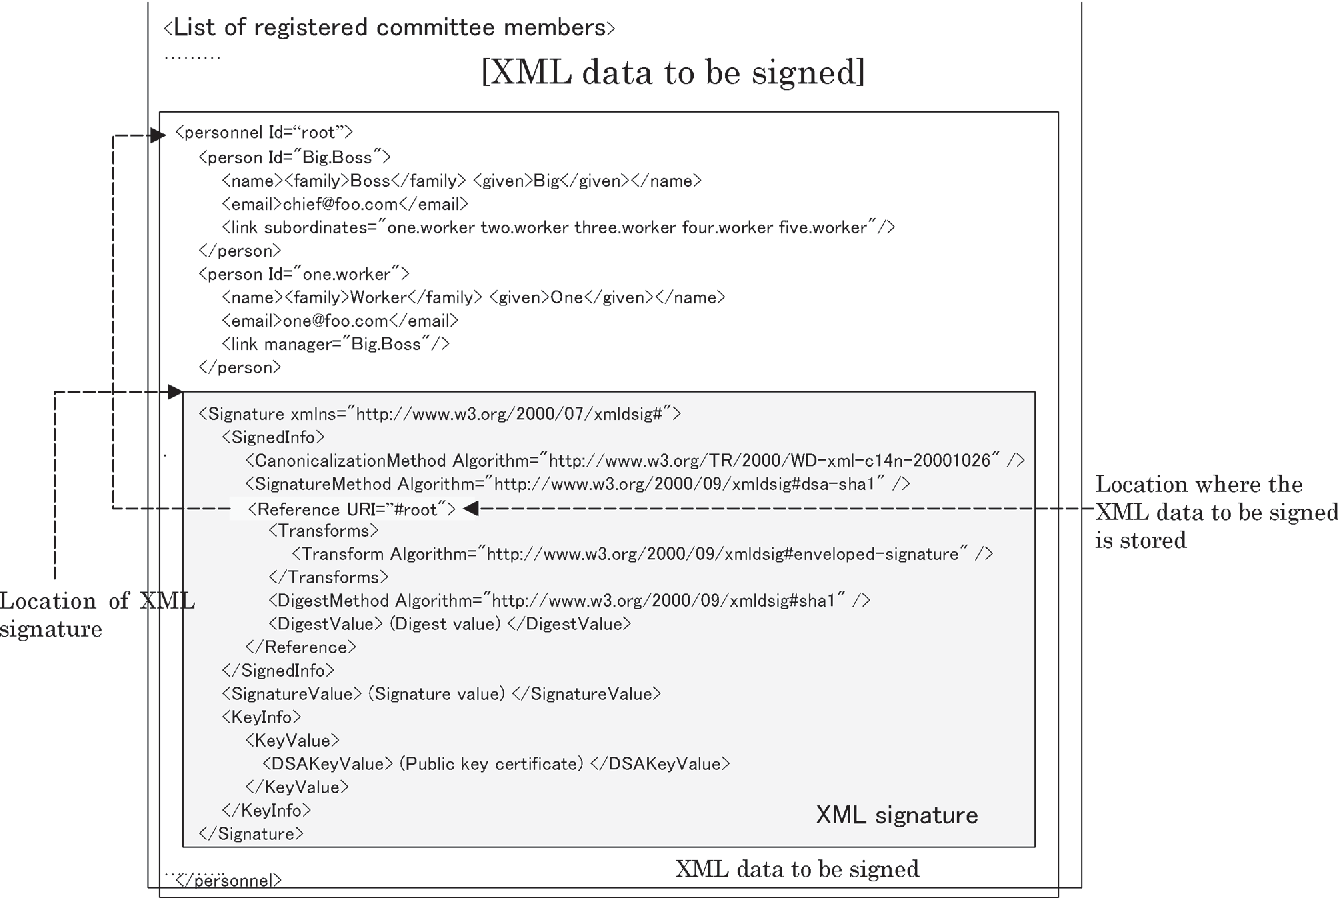 An example of business document signed with xml signature.